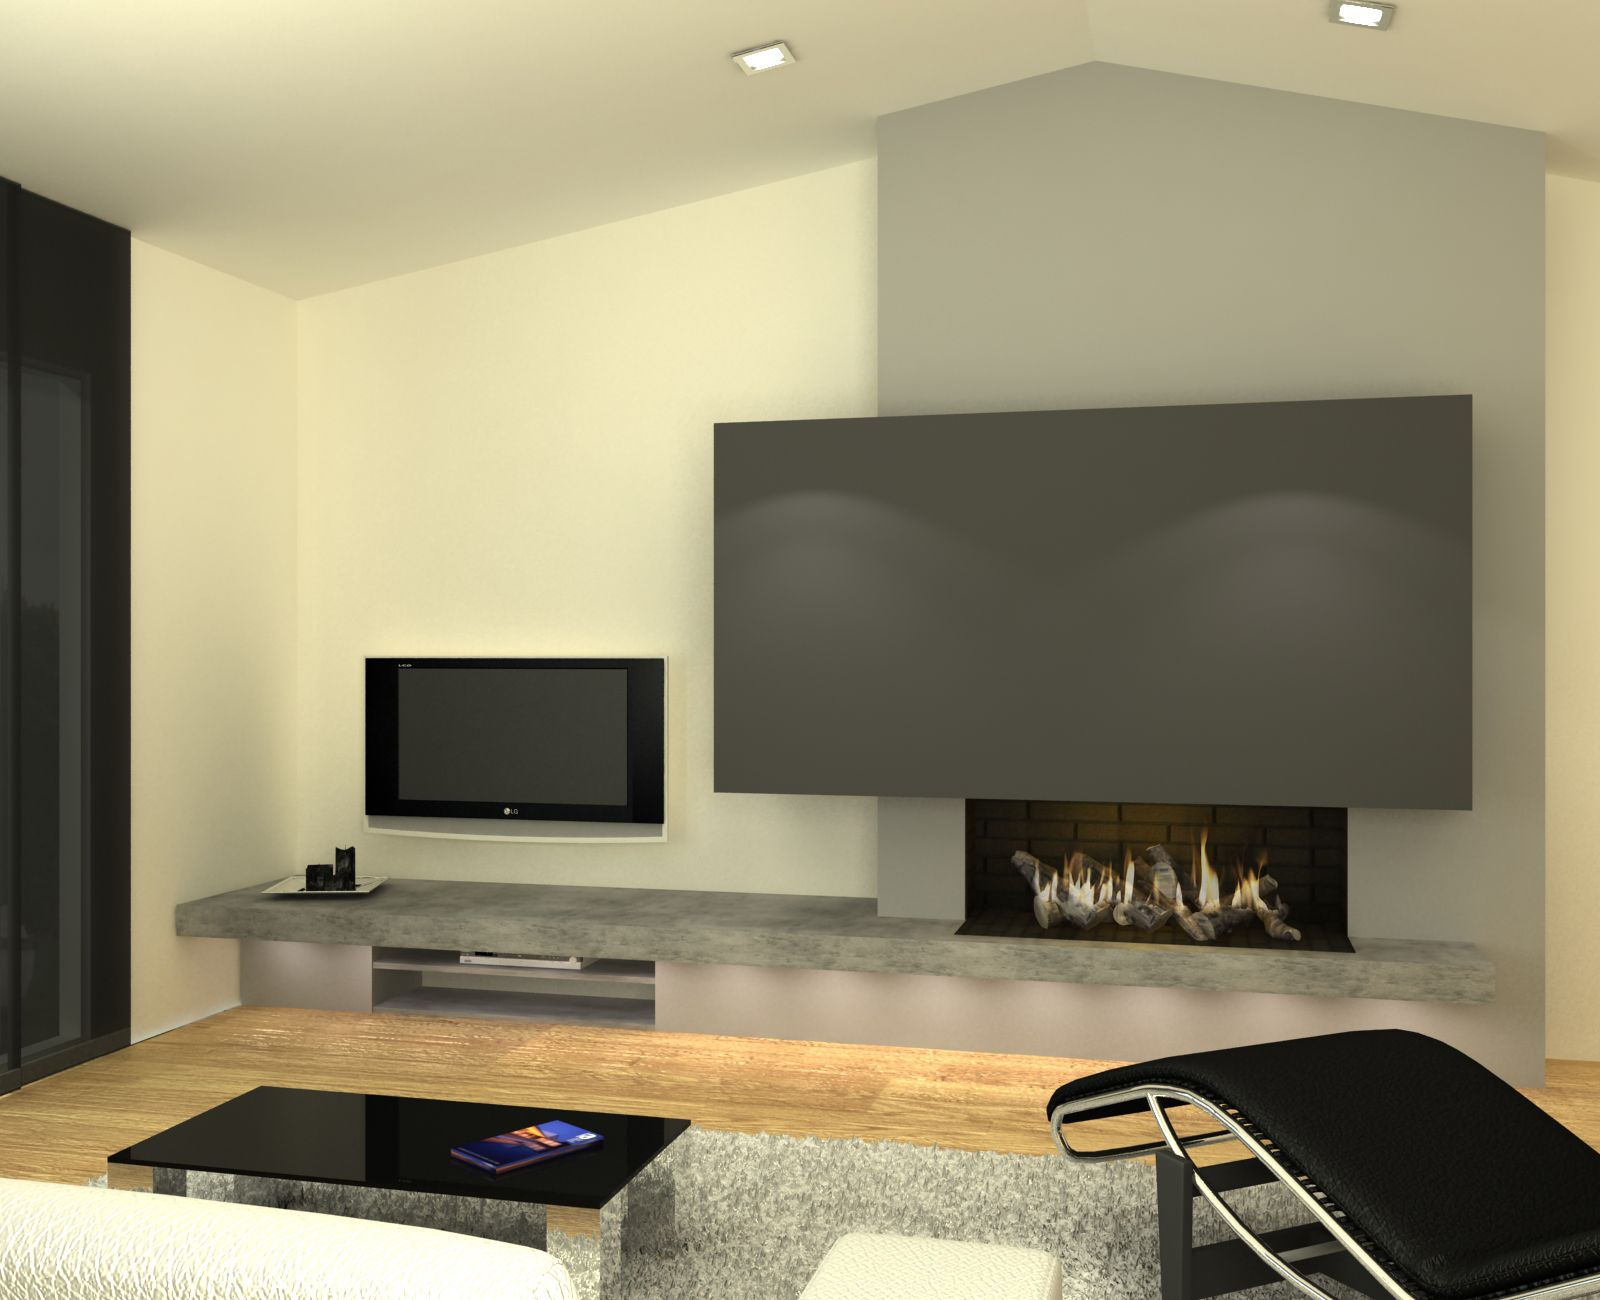 Media Rooms, Tags, Fireplaces, Living Room Decor, Santos, Fire Places,